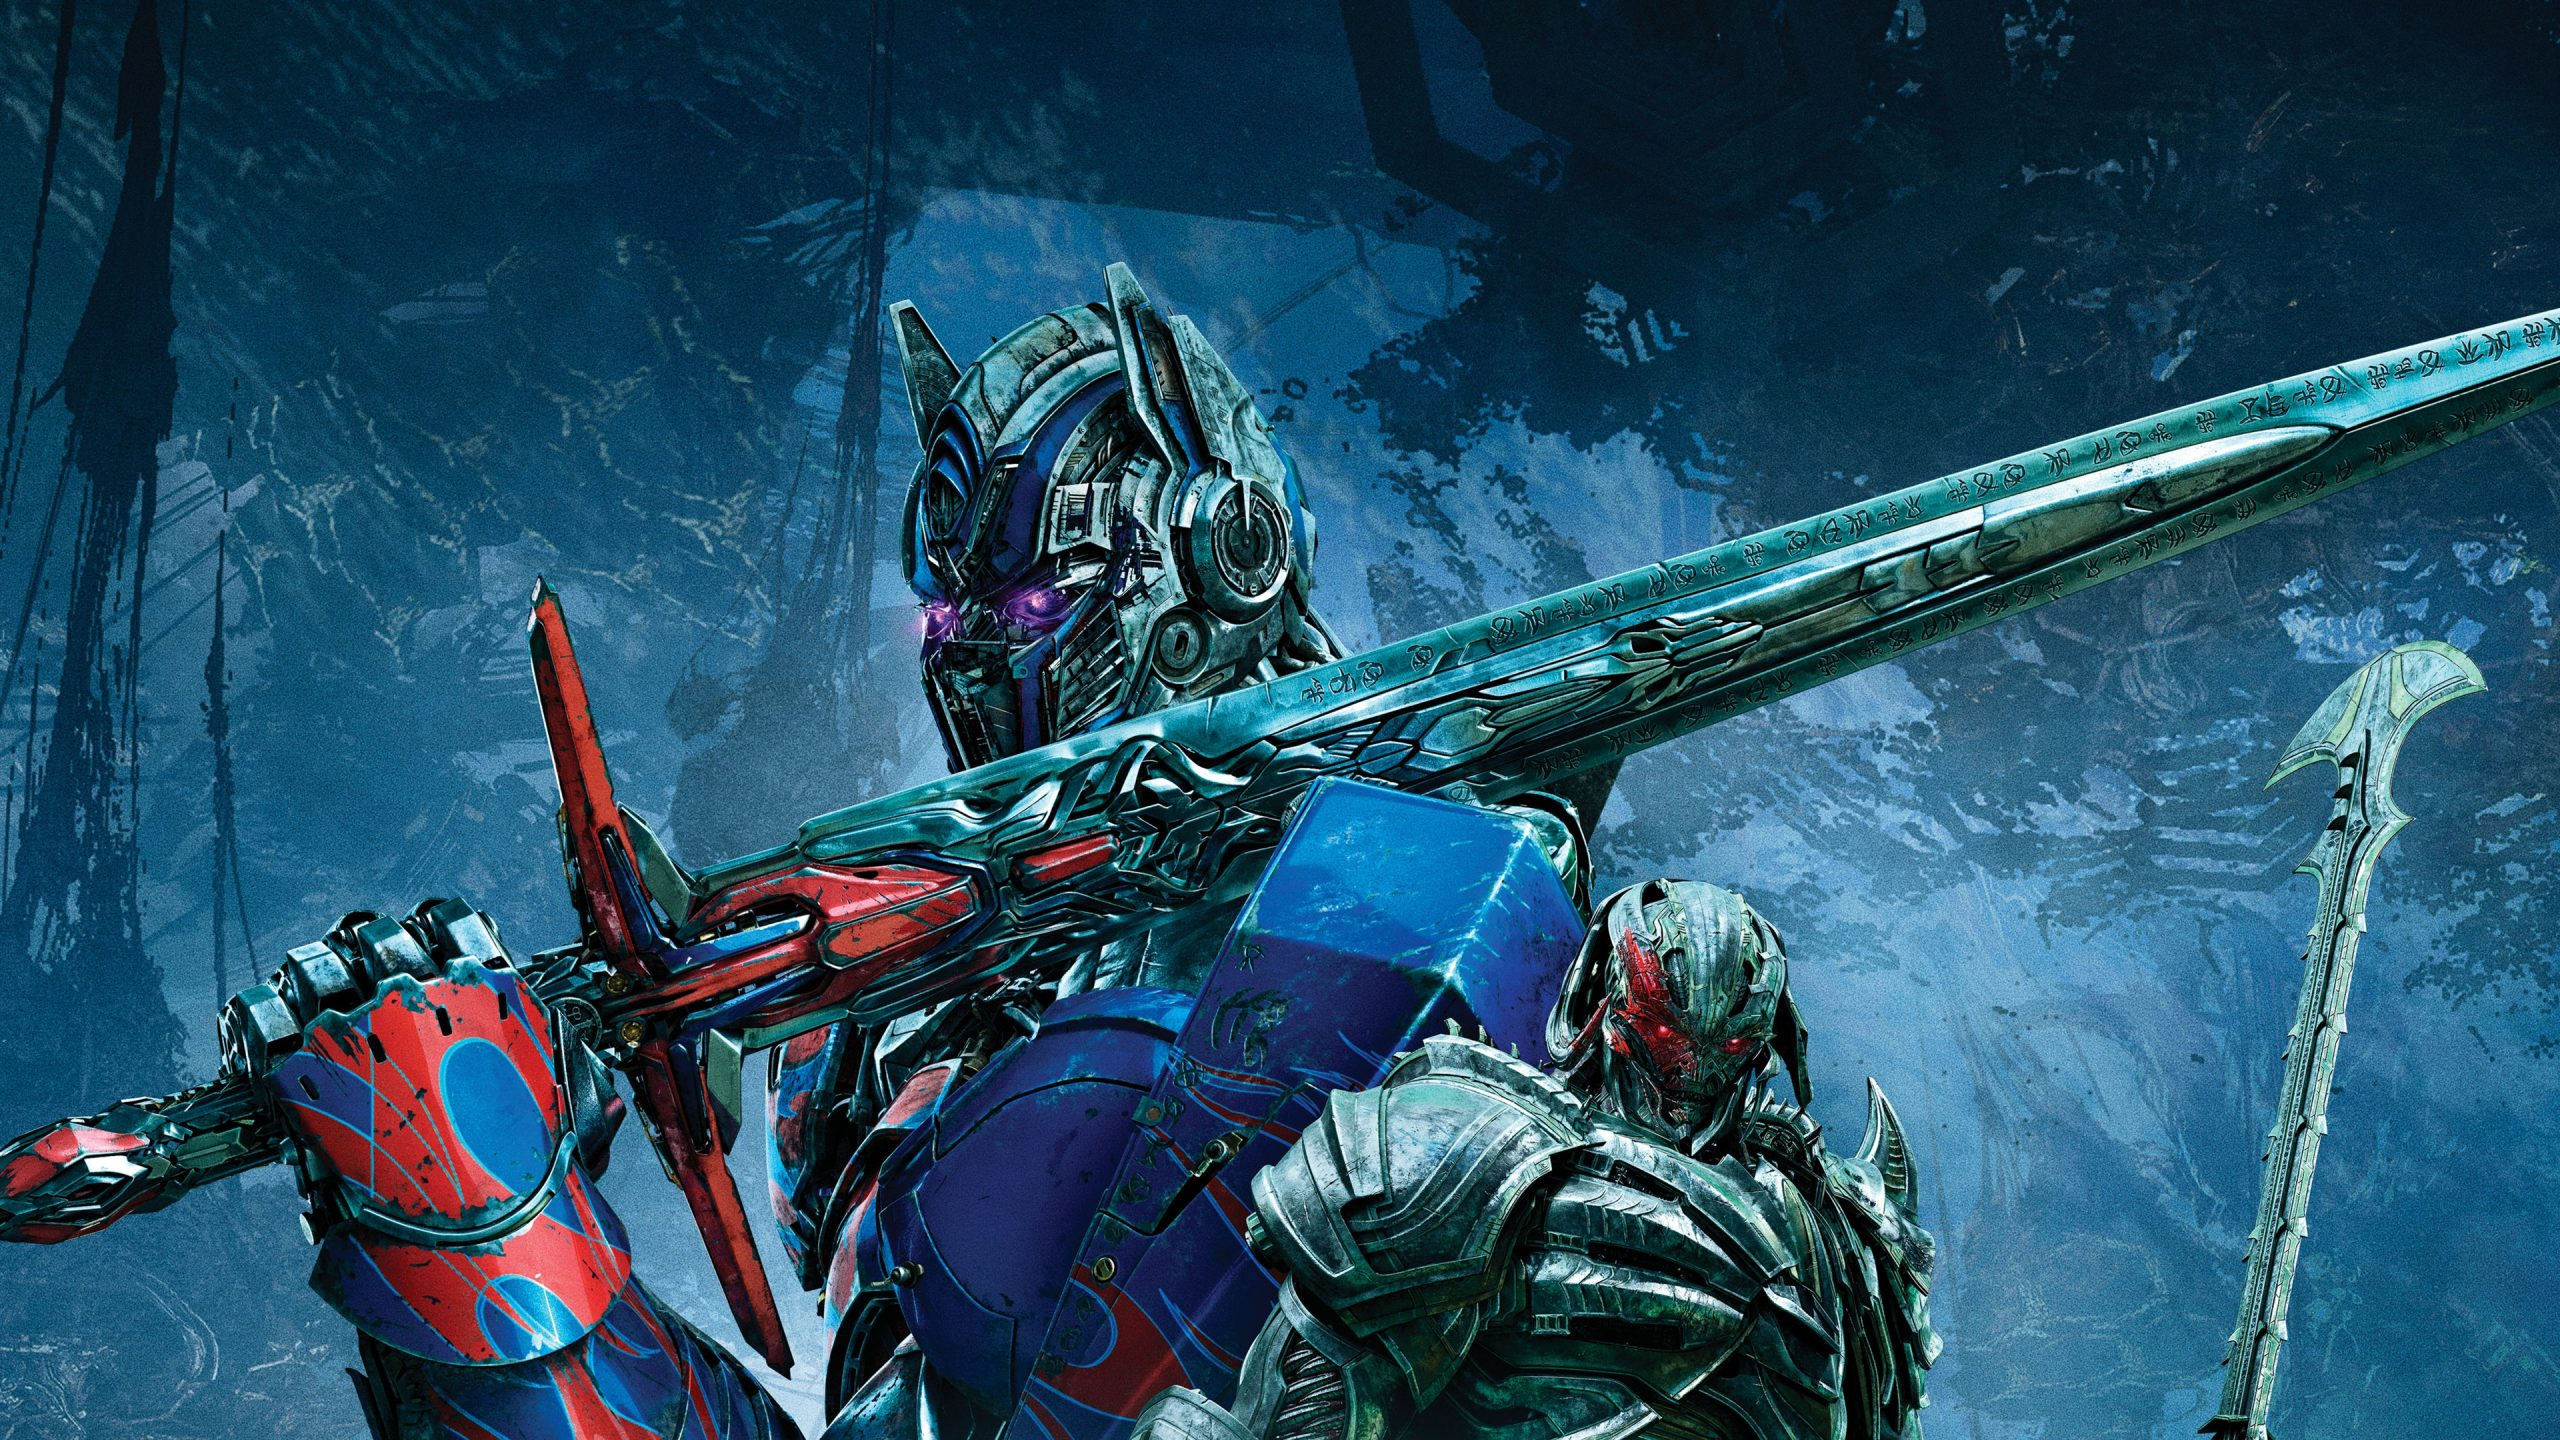 Transformers The Last Knight Optimus Prime wallpapers